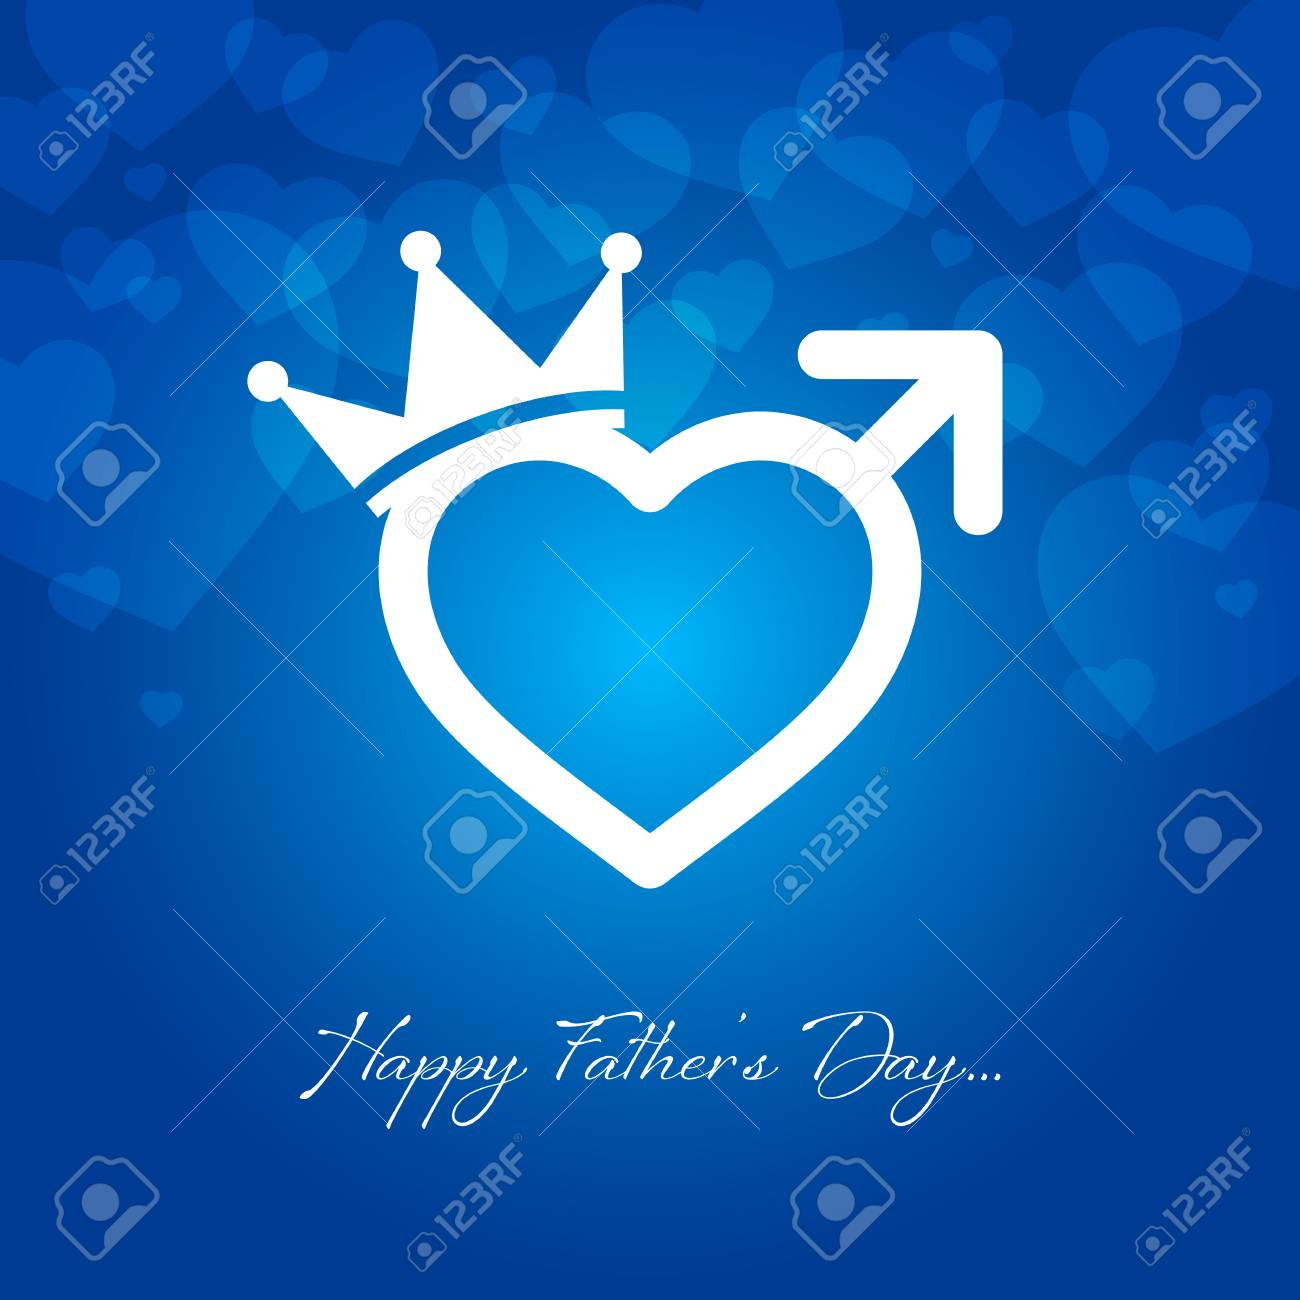 Happy Fathers Day Greeting Card Vector Illustration Royalty Free